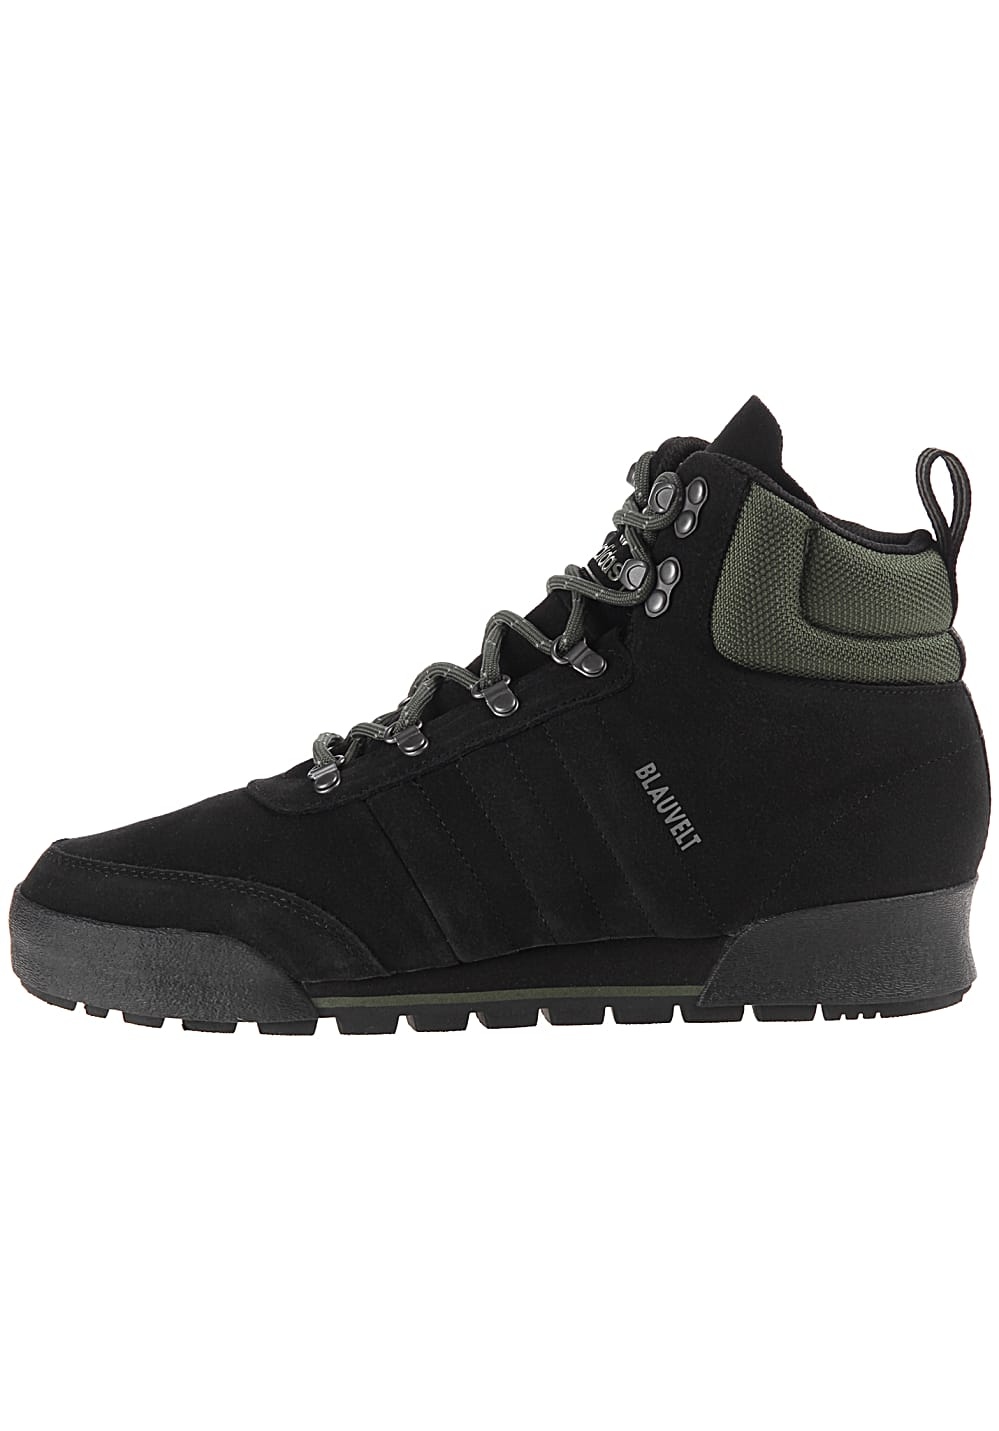 look out for hot sale online brand new Adidas Skateboarding Jake Boot 2.0 - Stiefel für Herren - Schwarz